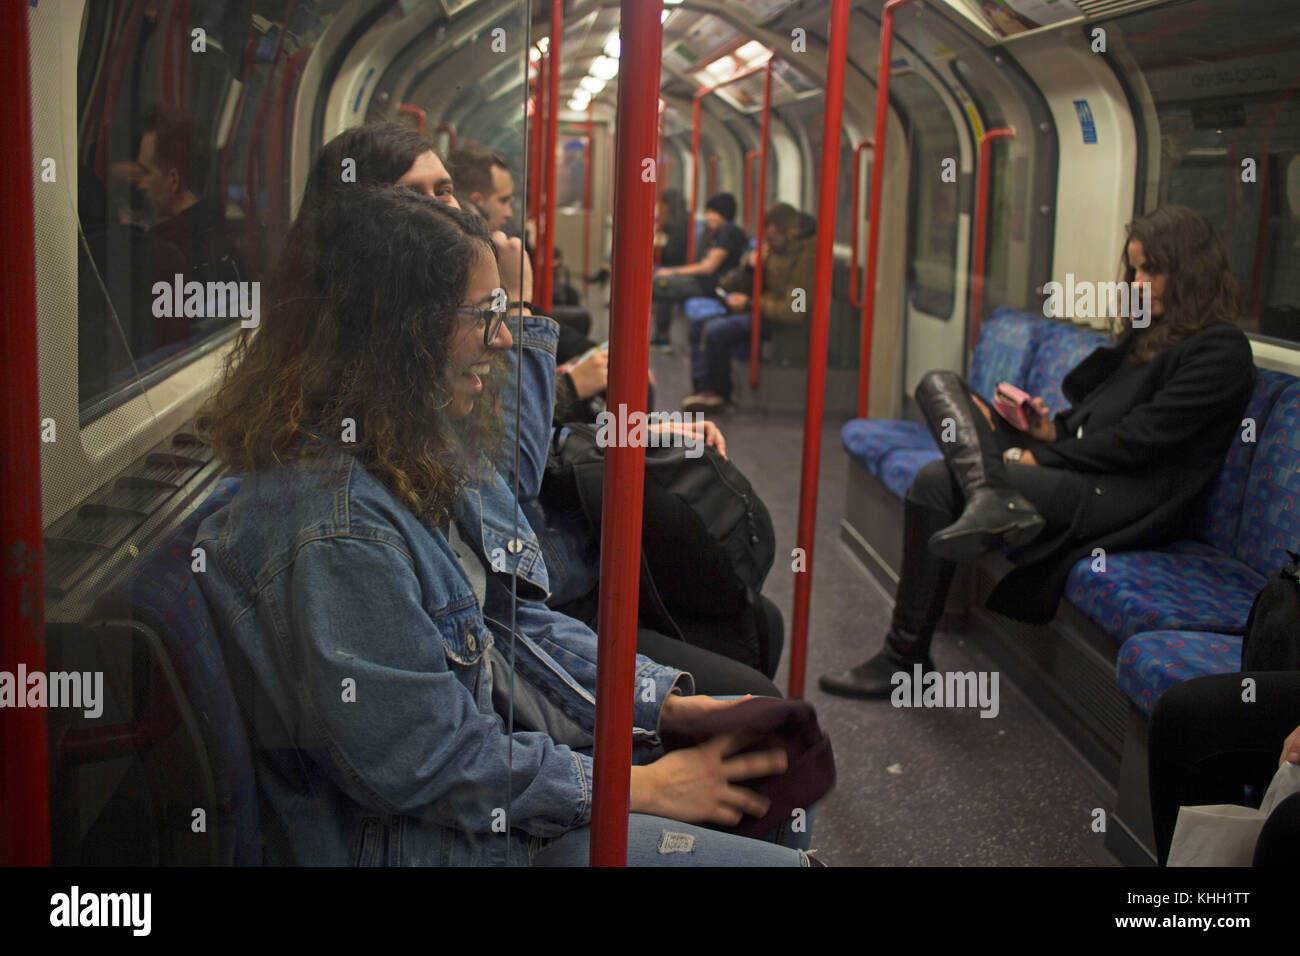 London, England, UK. 11th November 2017. People laughing and enjoying the night tube service ©Sian Reekie - Stock Image